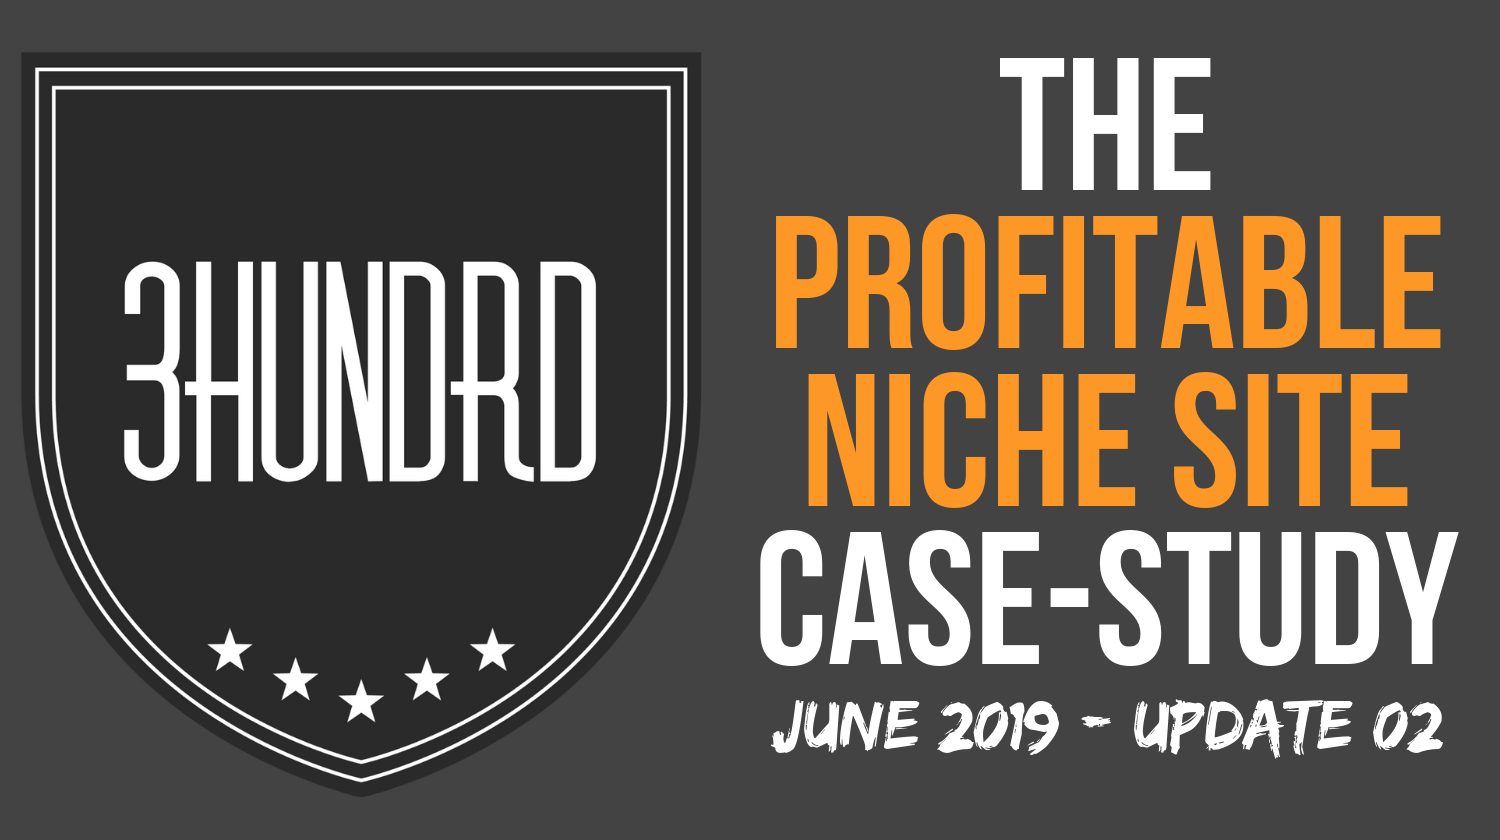 profitable niche site case study june 2019